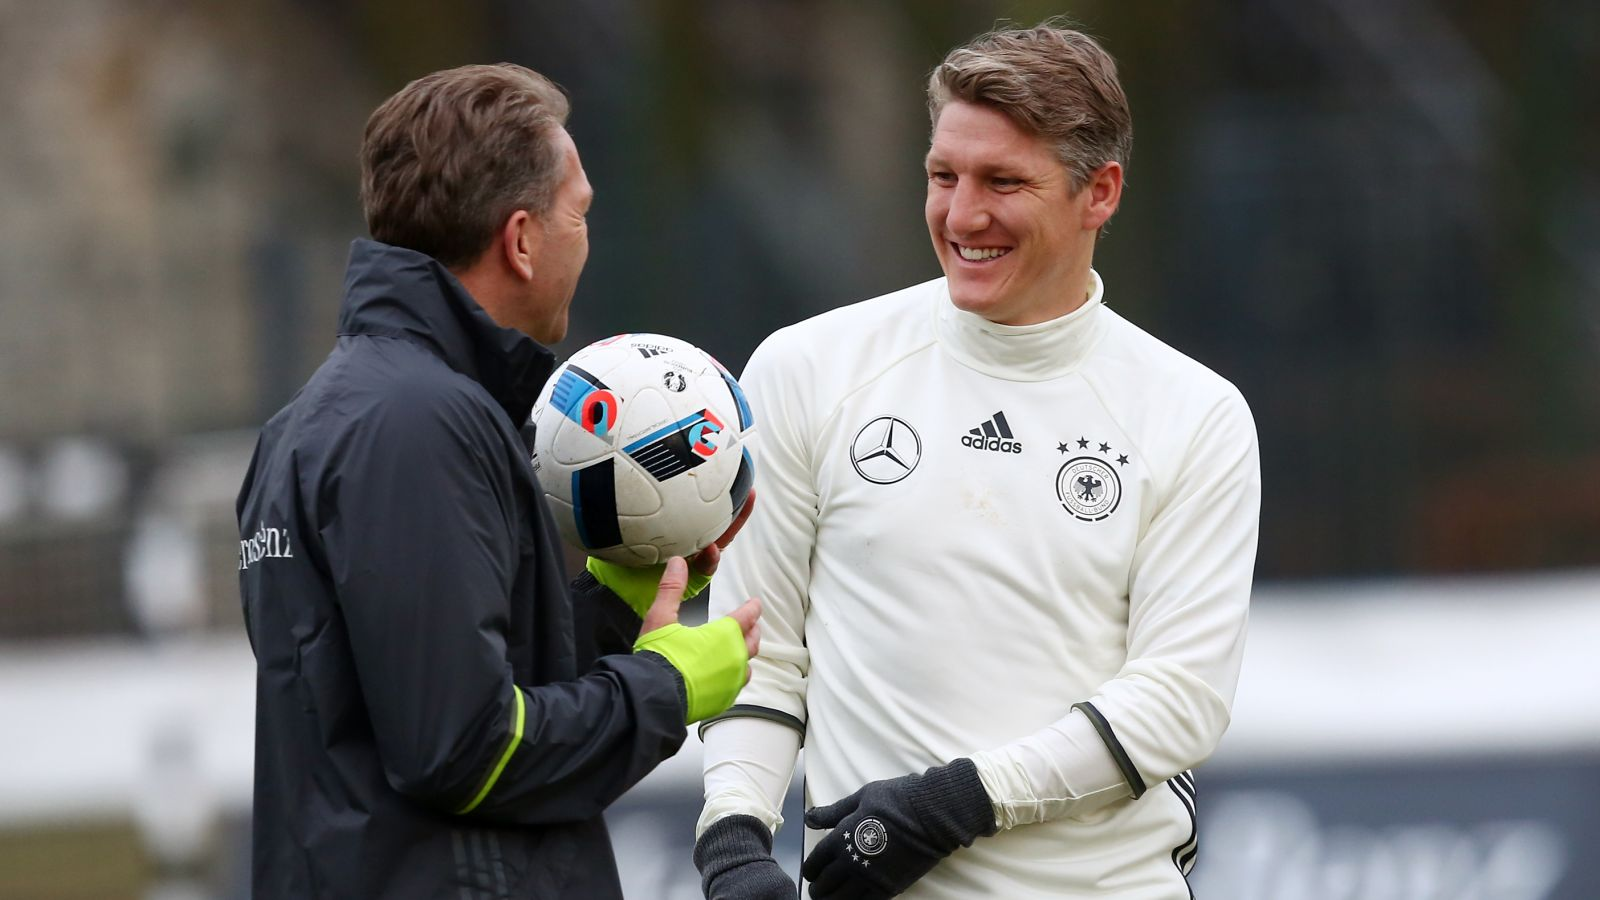 Schweinsteiger included in Germany's pre-Euro 2016 squad